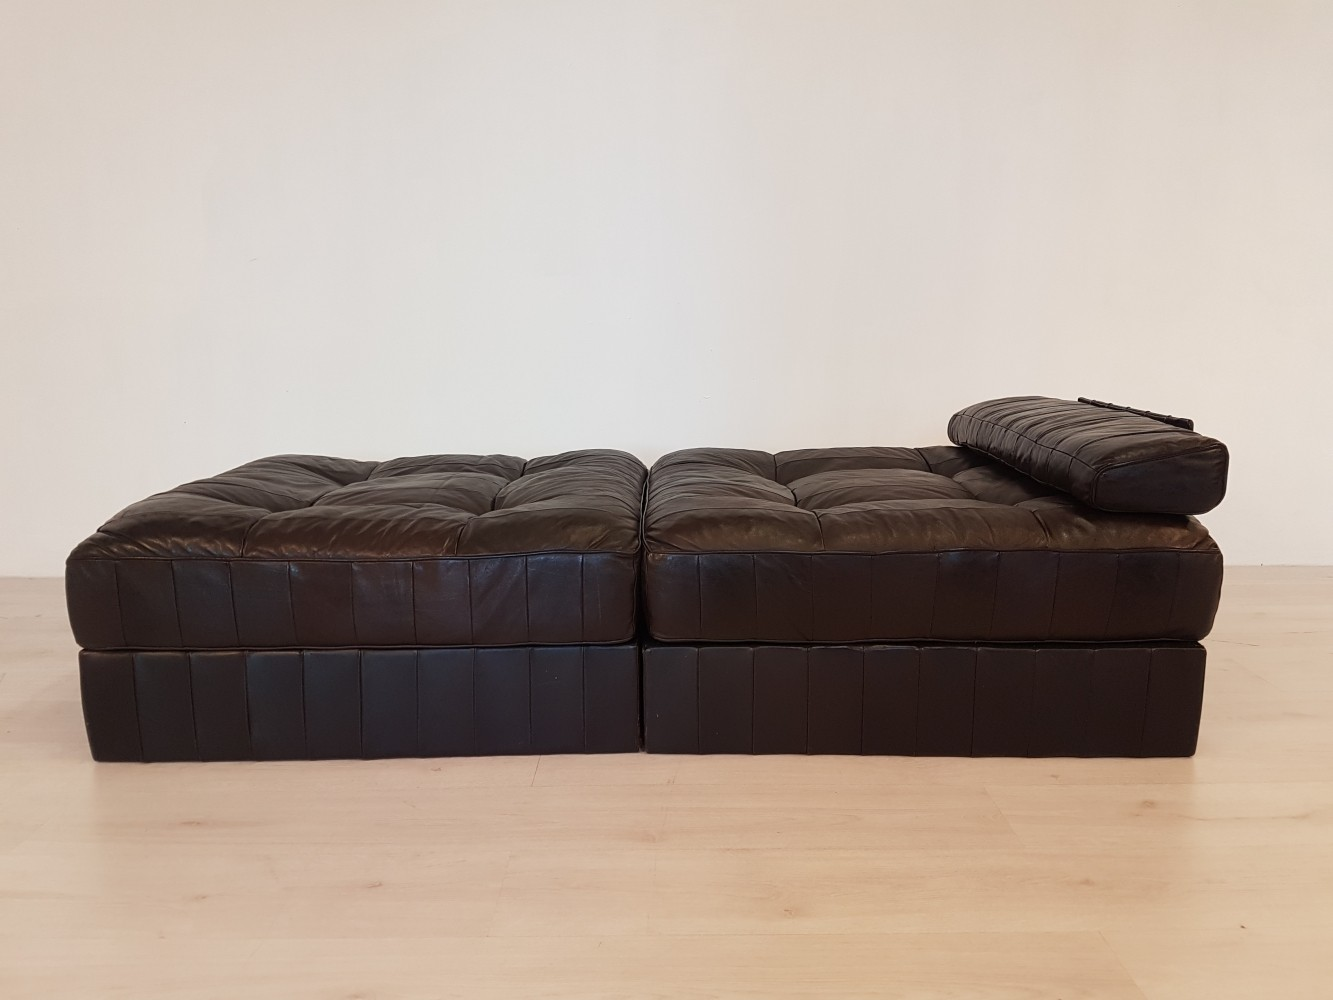 De Sede DS-88 dark brown leather daybed, 1970s